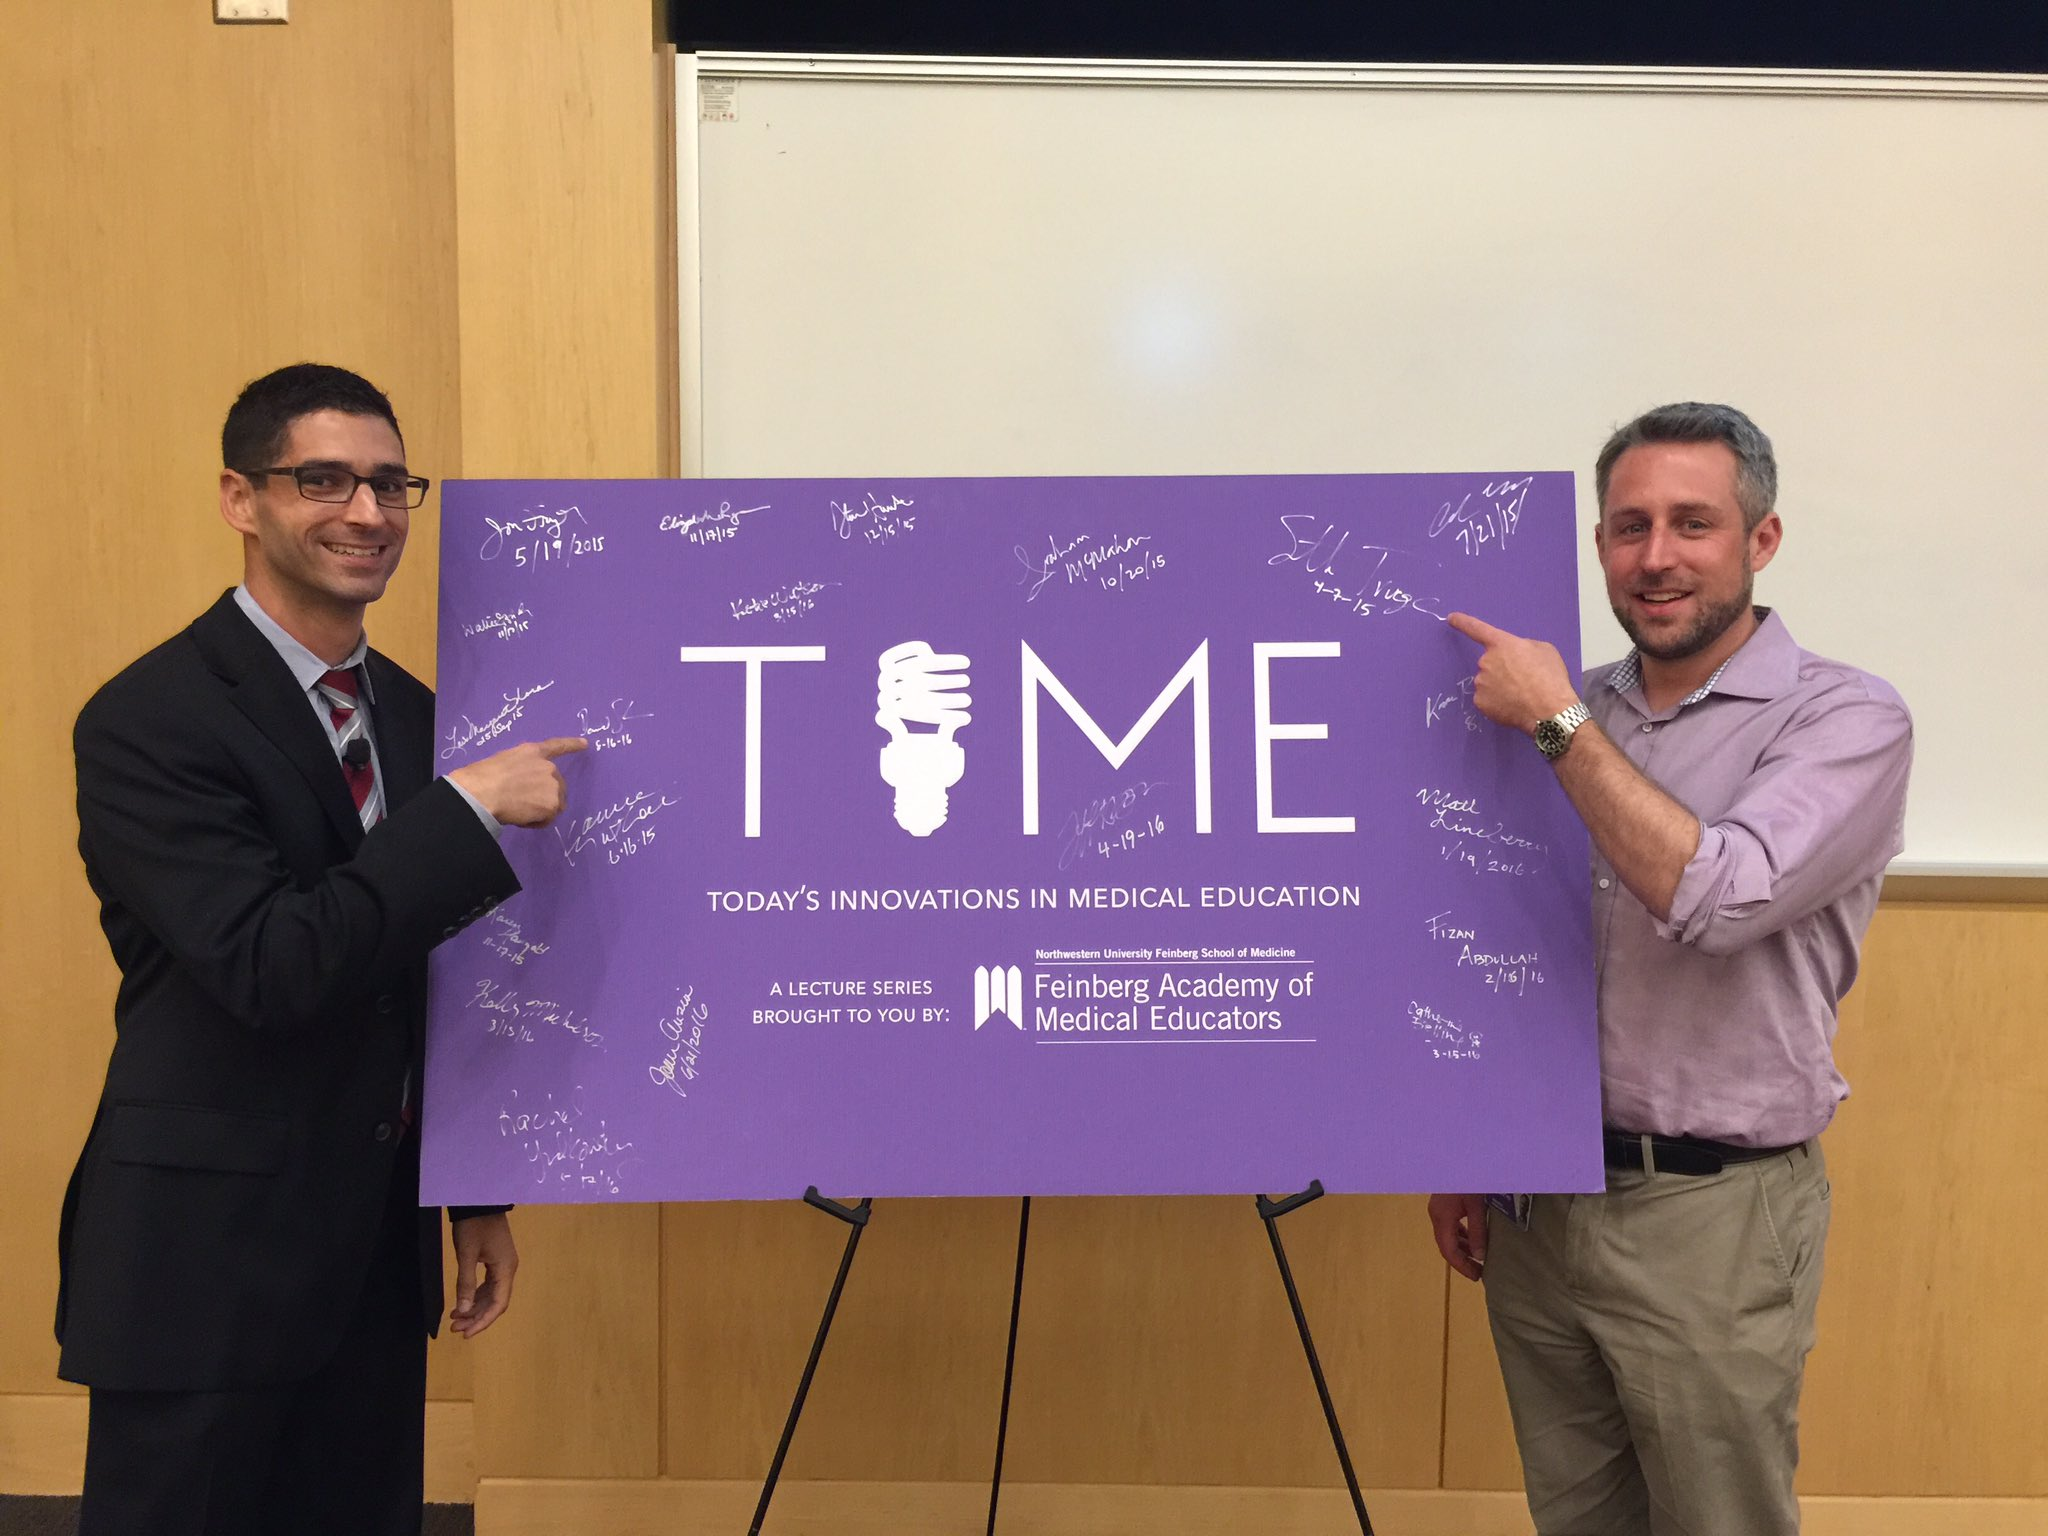 Our Department is proud to now have two faculty who have lectured in the @NU_FAME TIME series, @dhsalz13 & @MDaware! https://t.co/fD9TINzEok